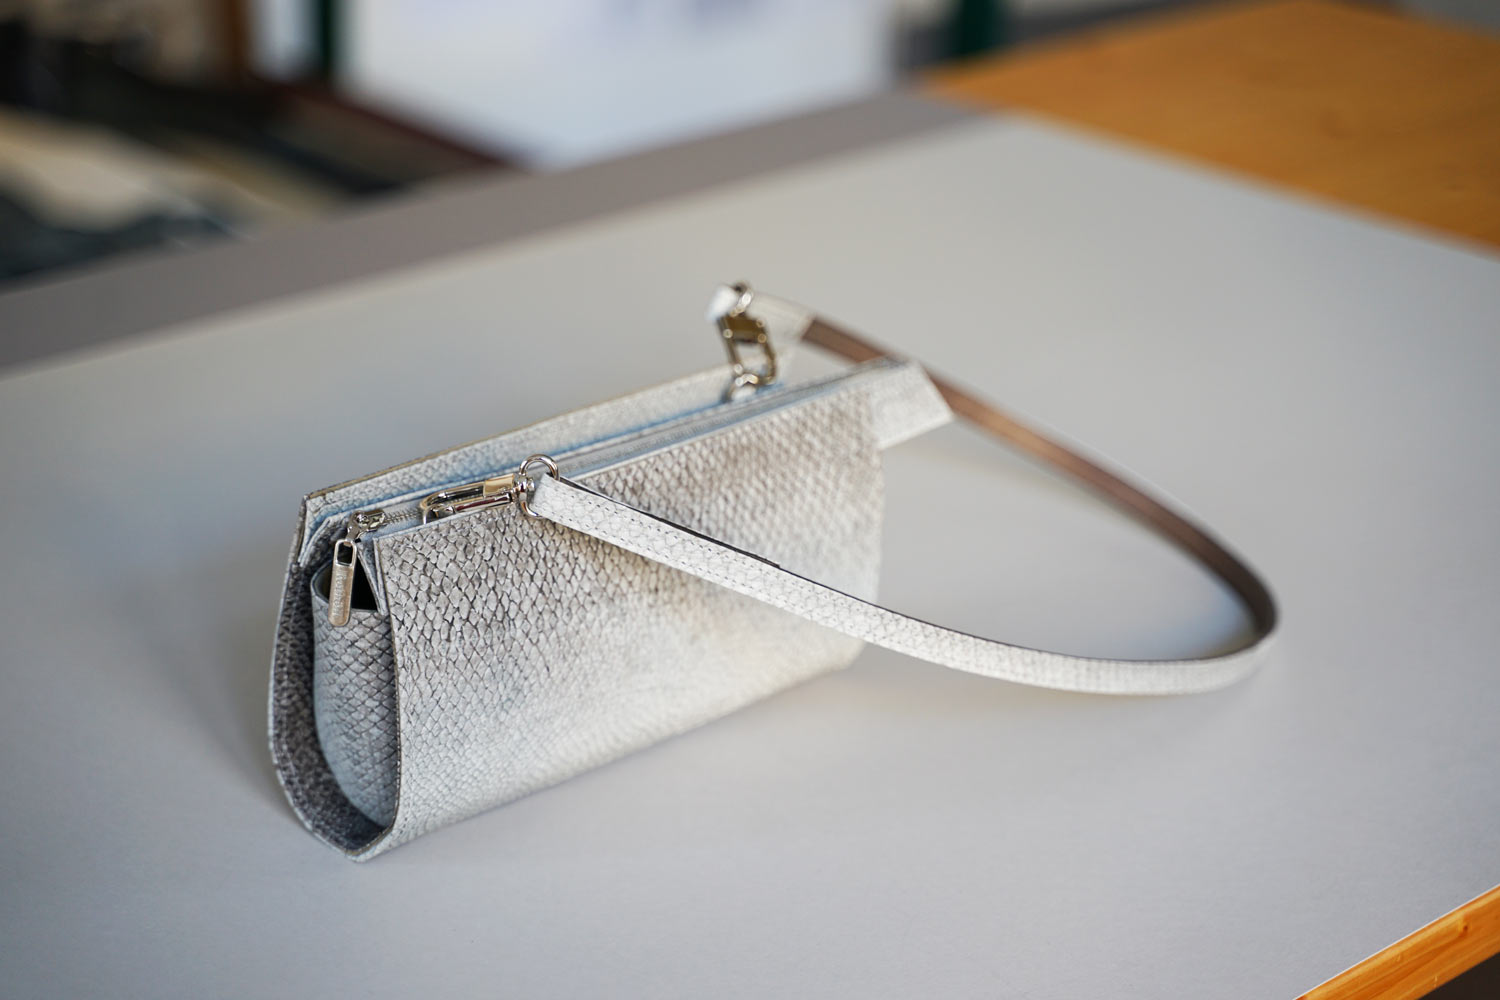 Small handbag made of natural gray salmon leather